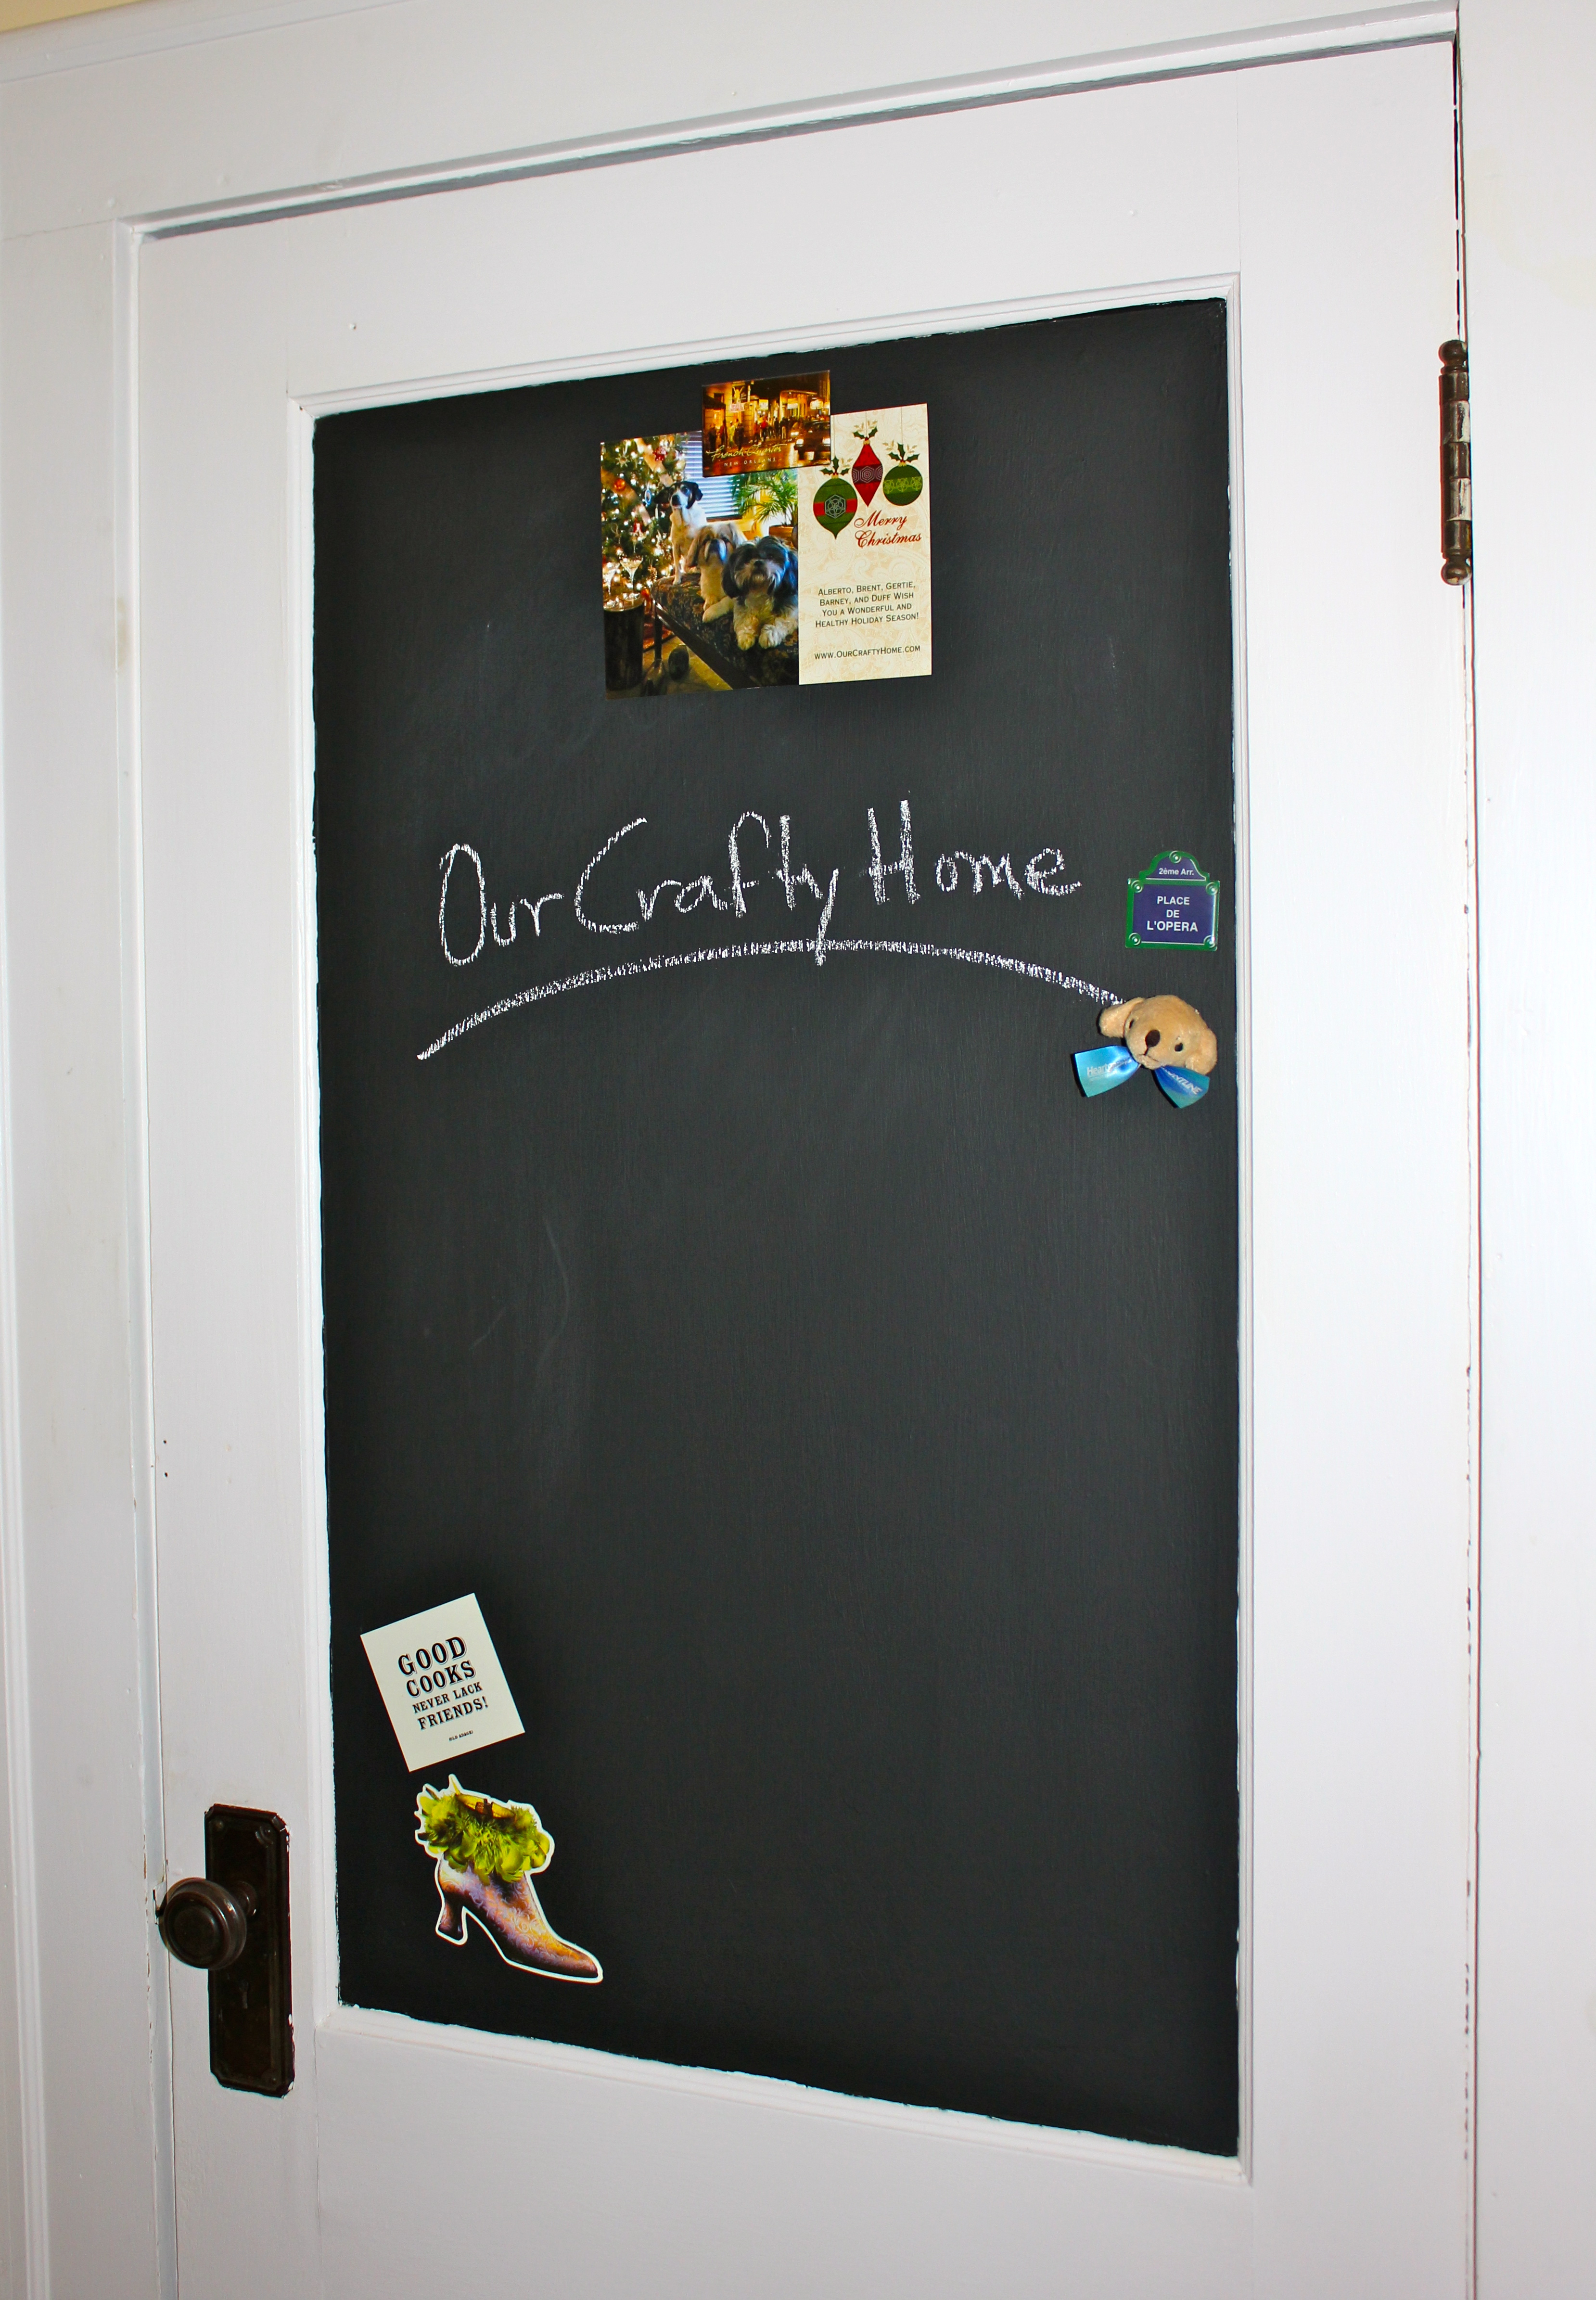 Like ... & Our Crafty Home | Magnetic Chalkboard Door Pezcame.Com